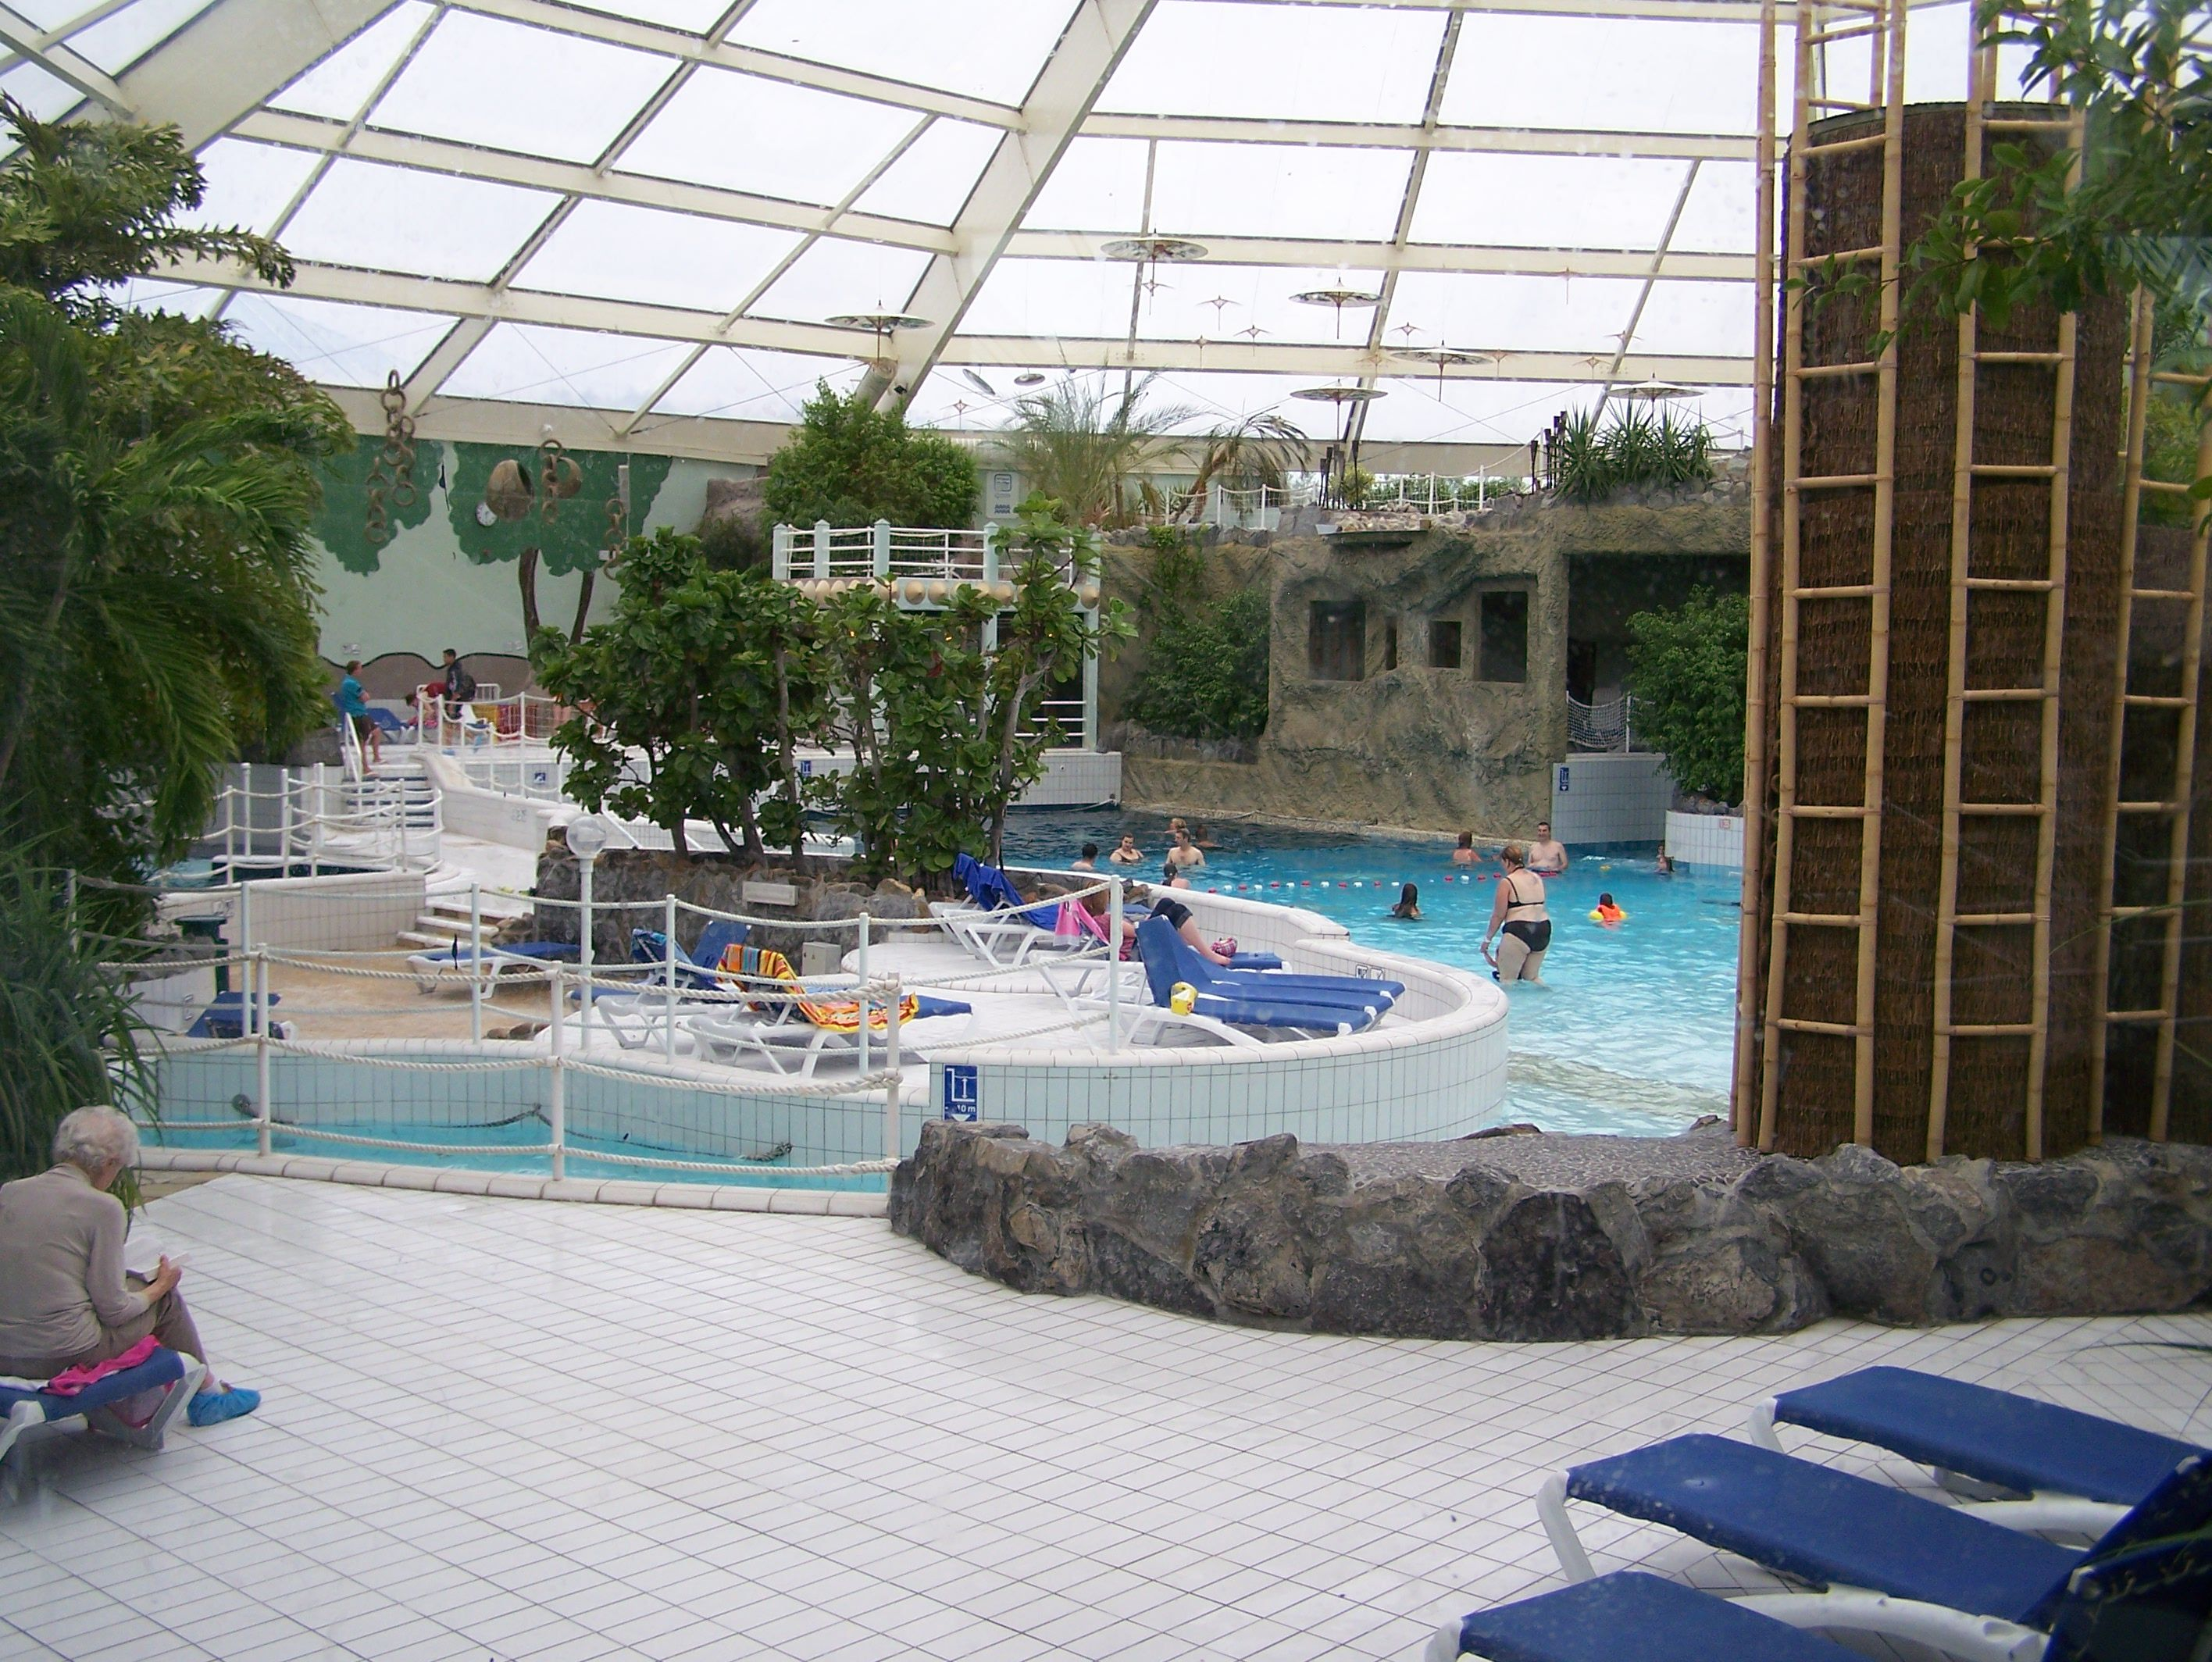 La piscine de center parc for Piscine center parc sarrebourg